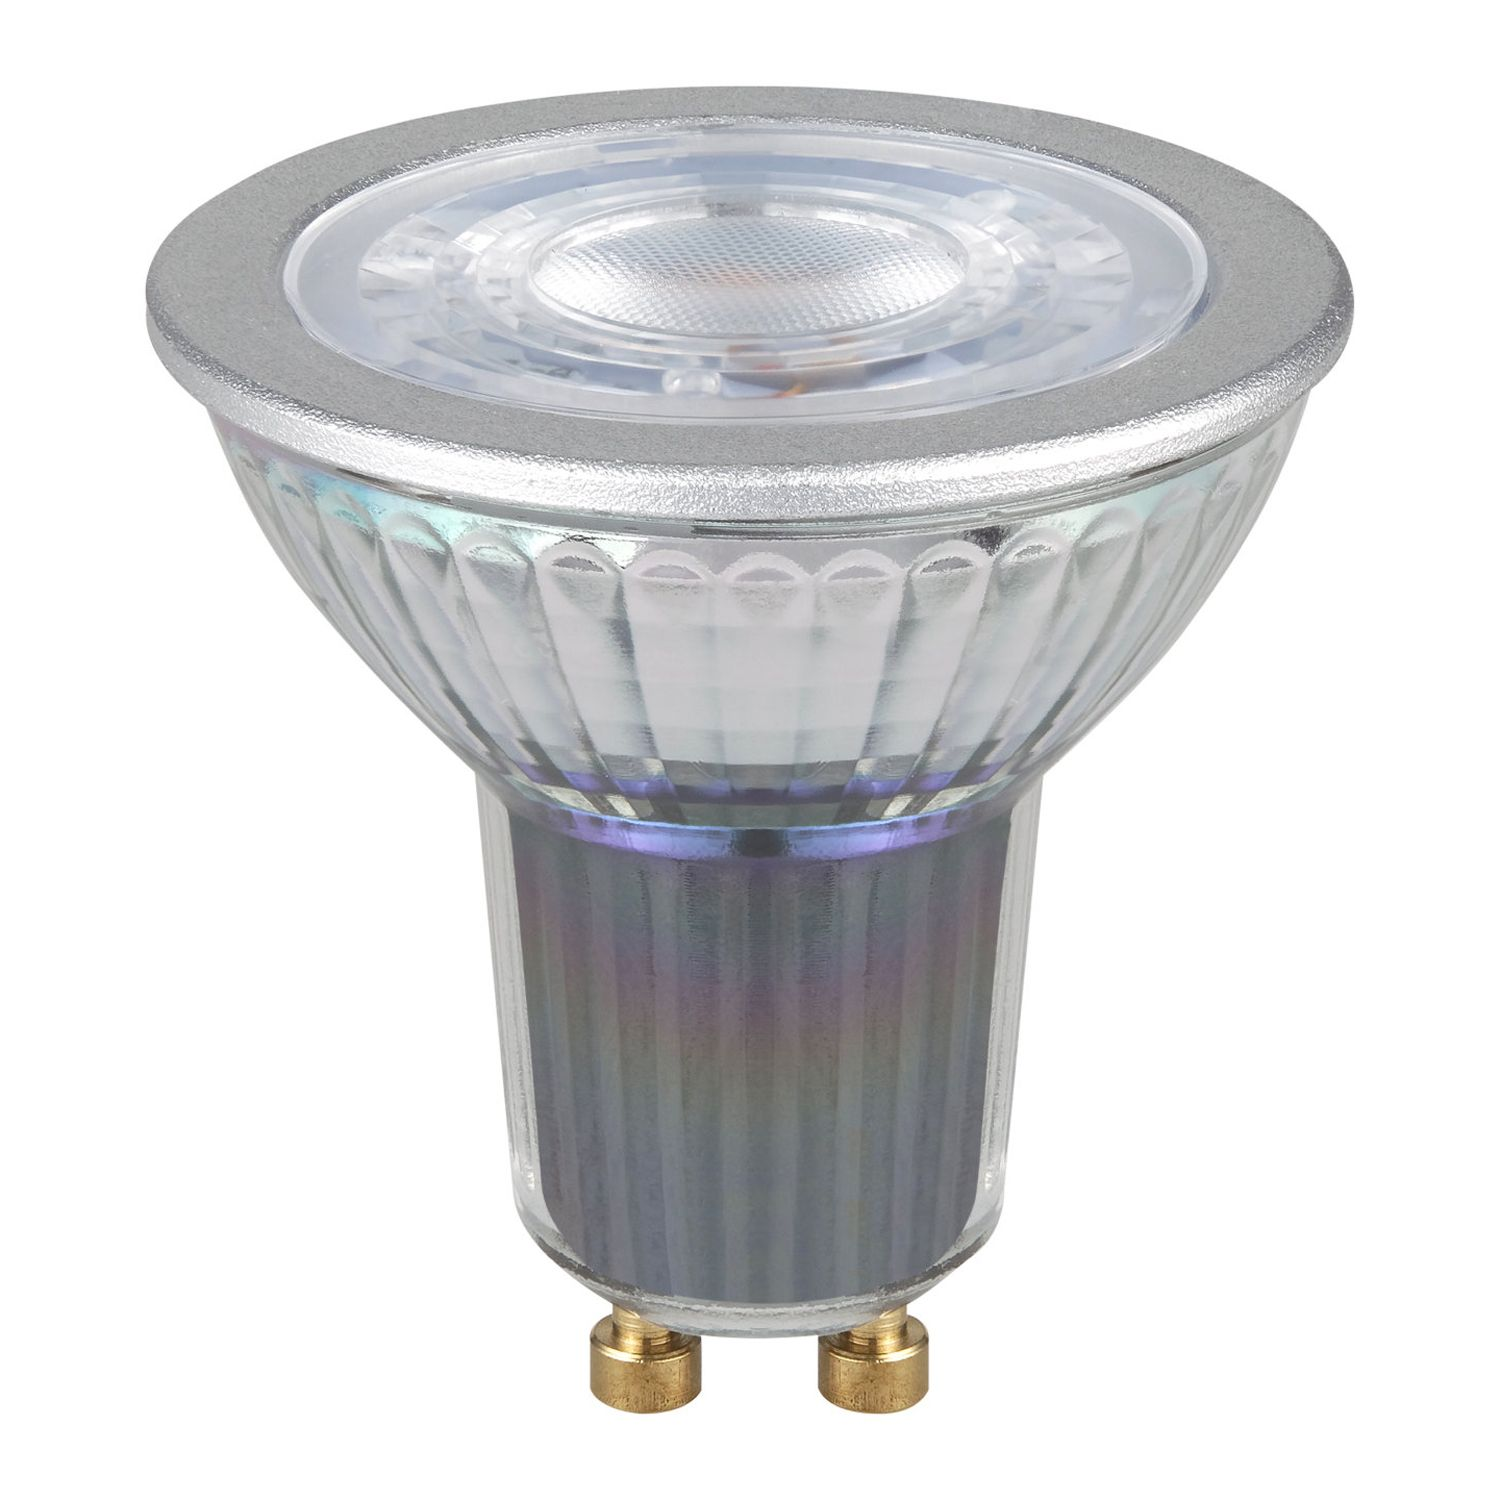 Osram Parathom Retrofit GU10 PAR16 9.6W 827 36D 750lm | Replacer for 100W